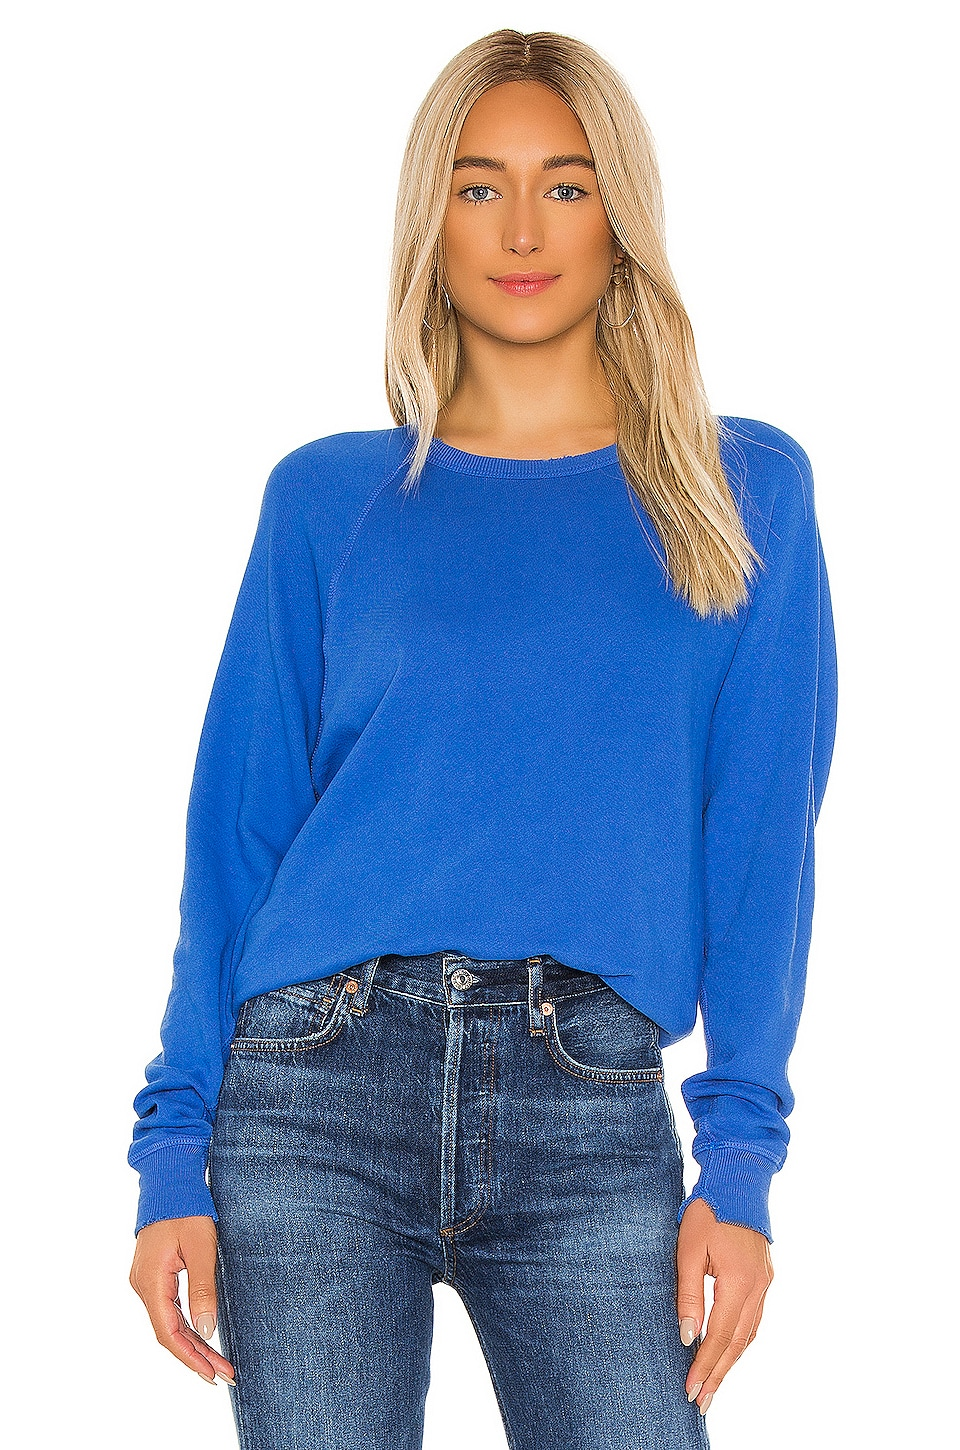 The Great The College Sweatshirt in Blue Yonder